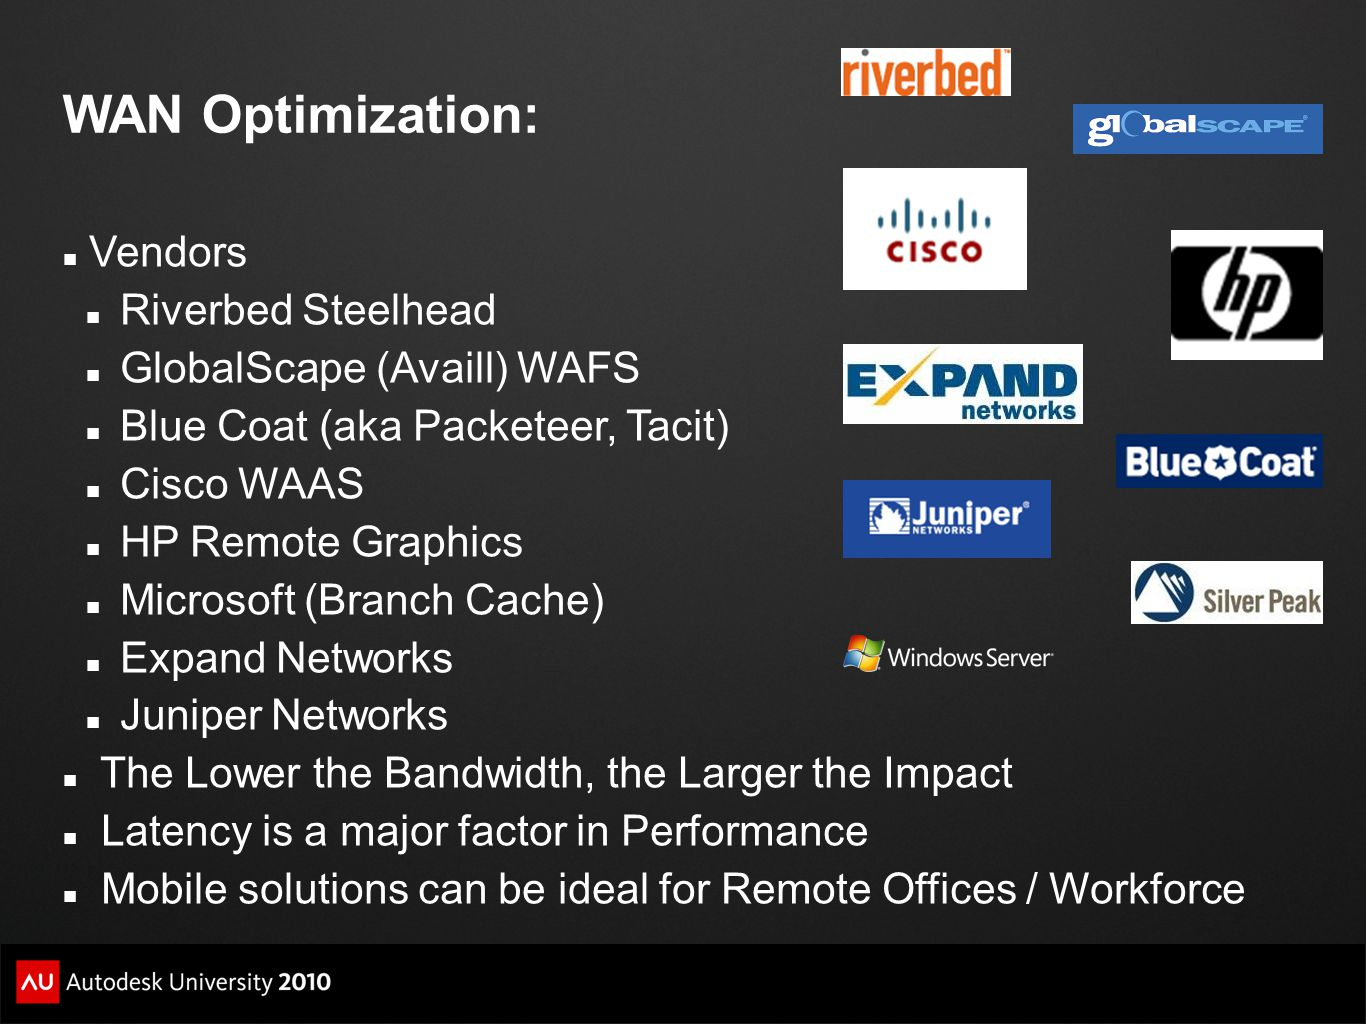 WAN Optimization: Vendors Riverbed Steelhead GlobalScape (Availl) WAFS Blue Coat (aka Packeteer, Tacit) Cisco WAAS HP Remote Graphics Microsoft (Branch Cache) Expand Networks Juniper Networks The Lower the Bandwidth, the Larger the Impact Latency is a major factor in Performance Mobile solutions can be ideal for Remote Offices / Workforce